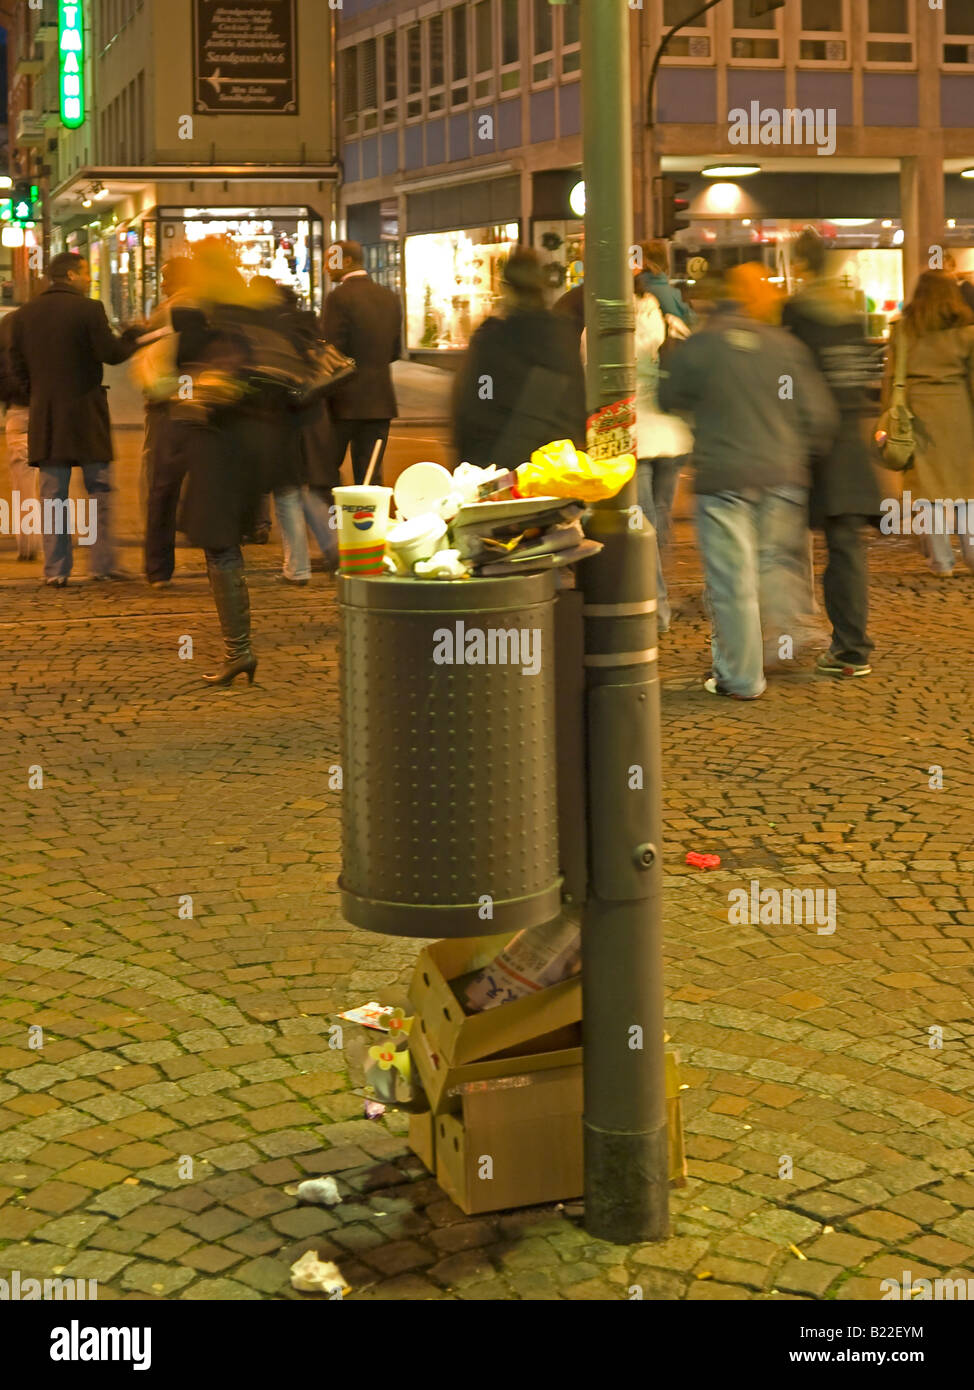 trash rubbish garbage and a full waste bin garbage can in pedestrian area in the night in the city Frankfurt am - Stock Image